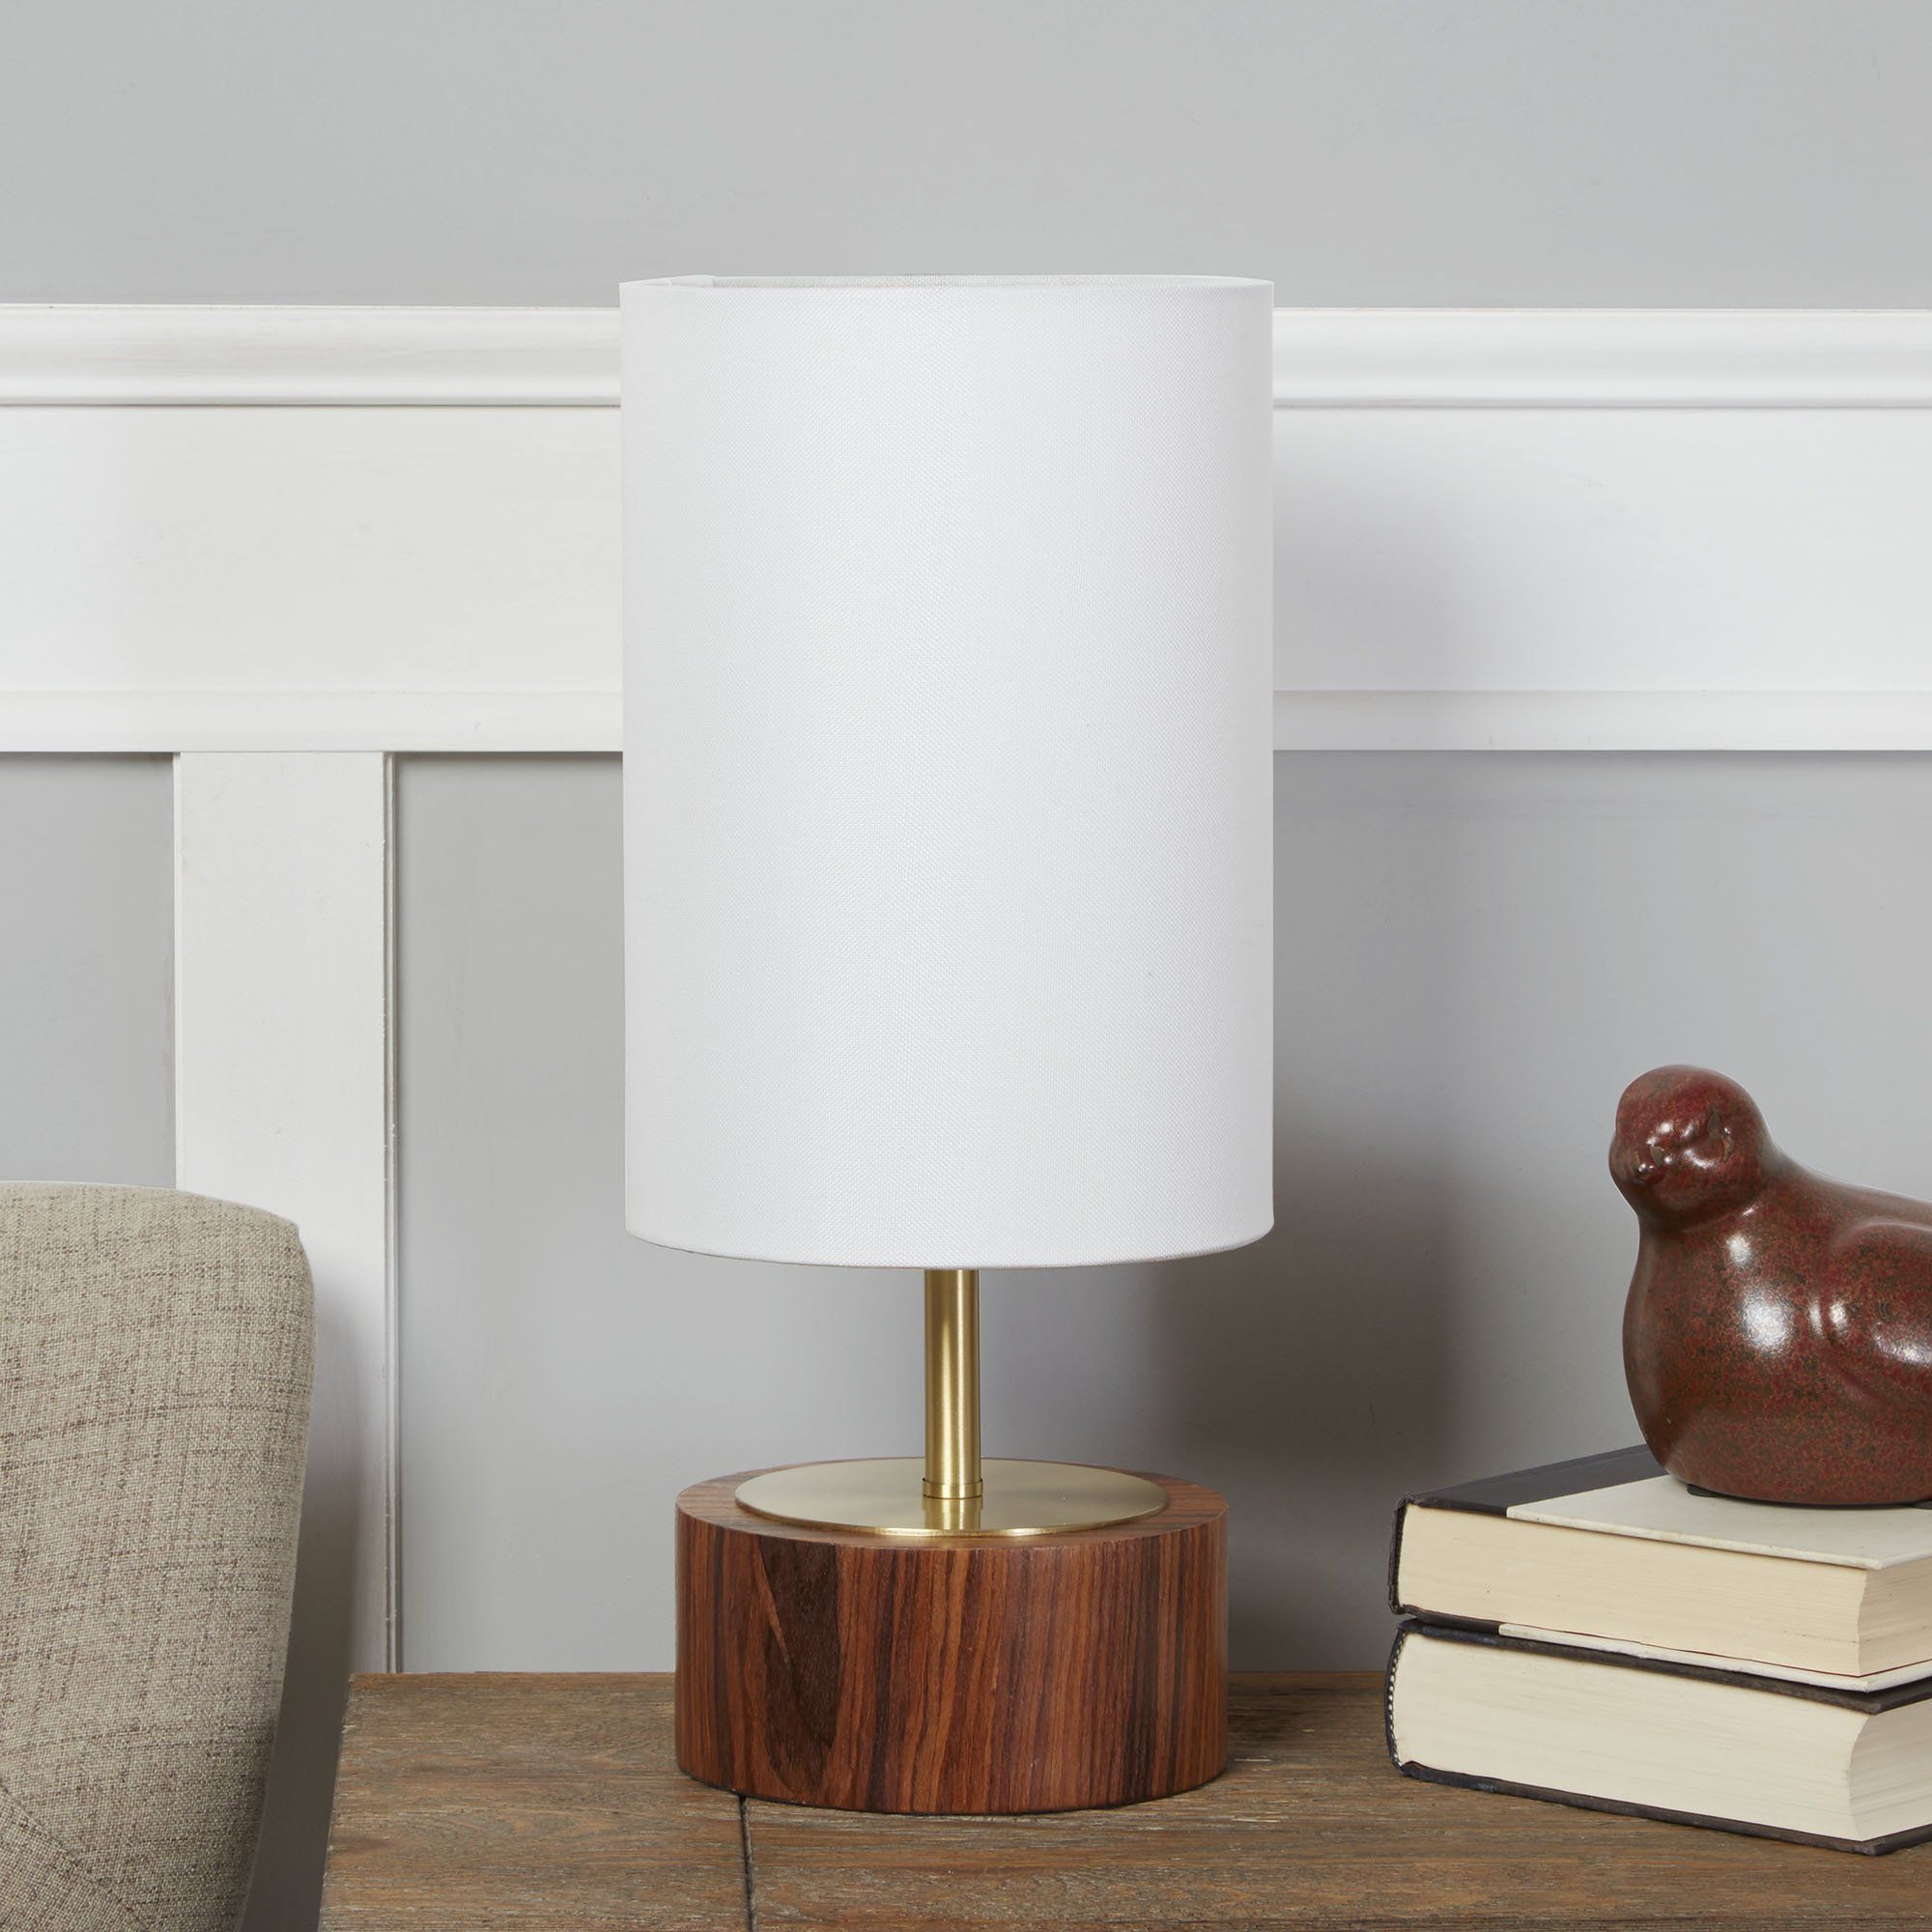 Home decor with touch table lamp